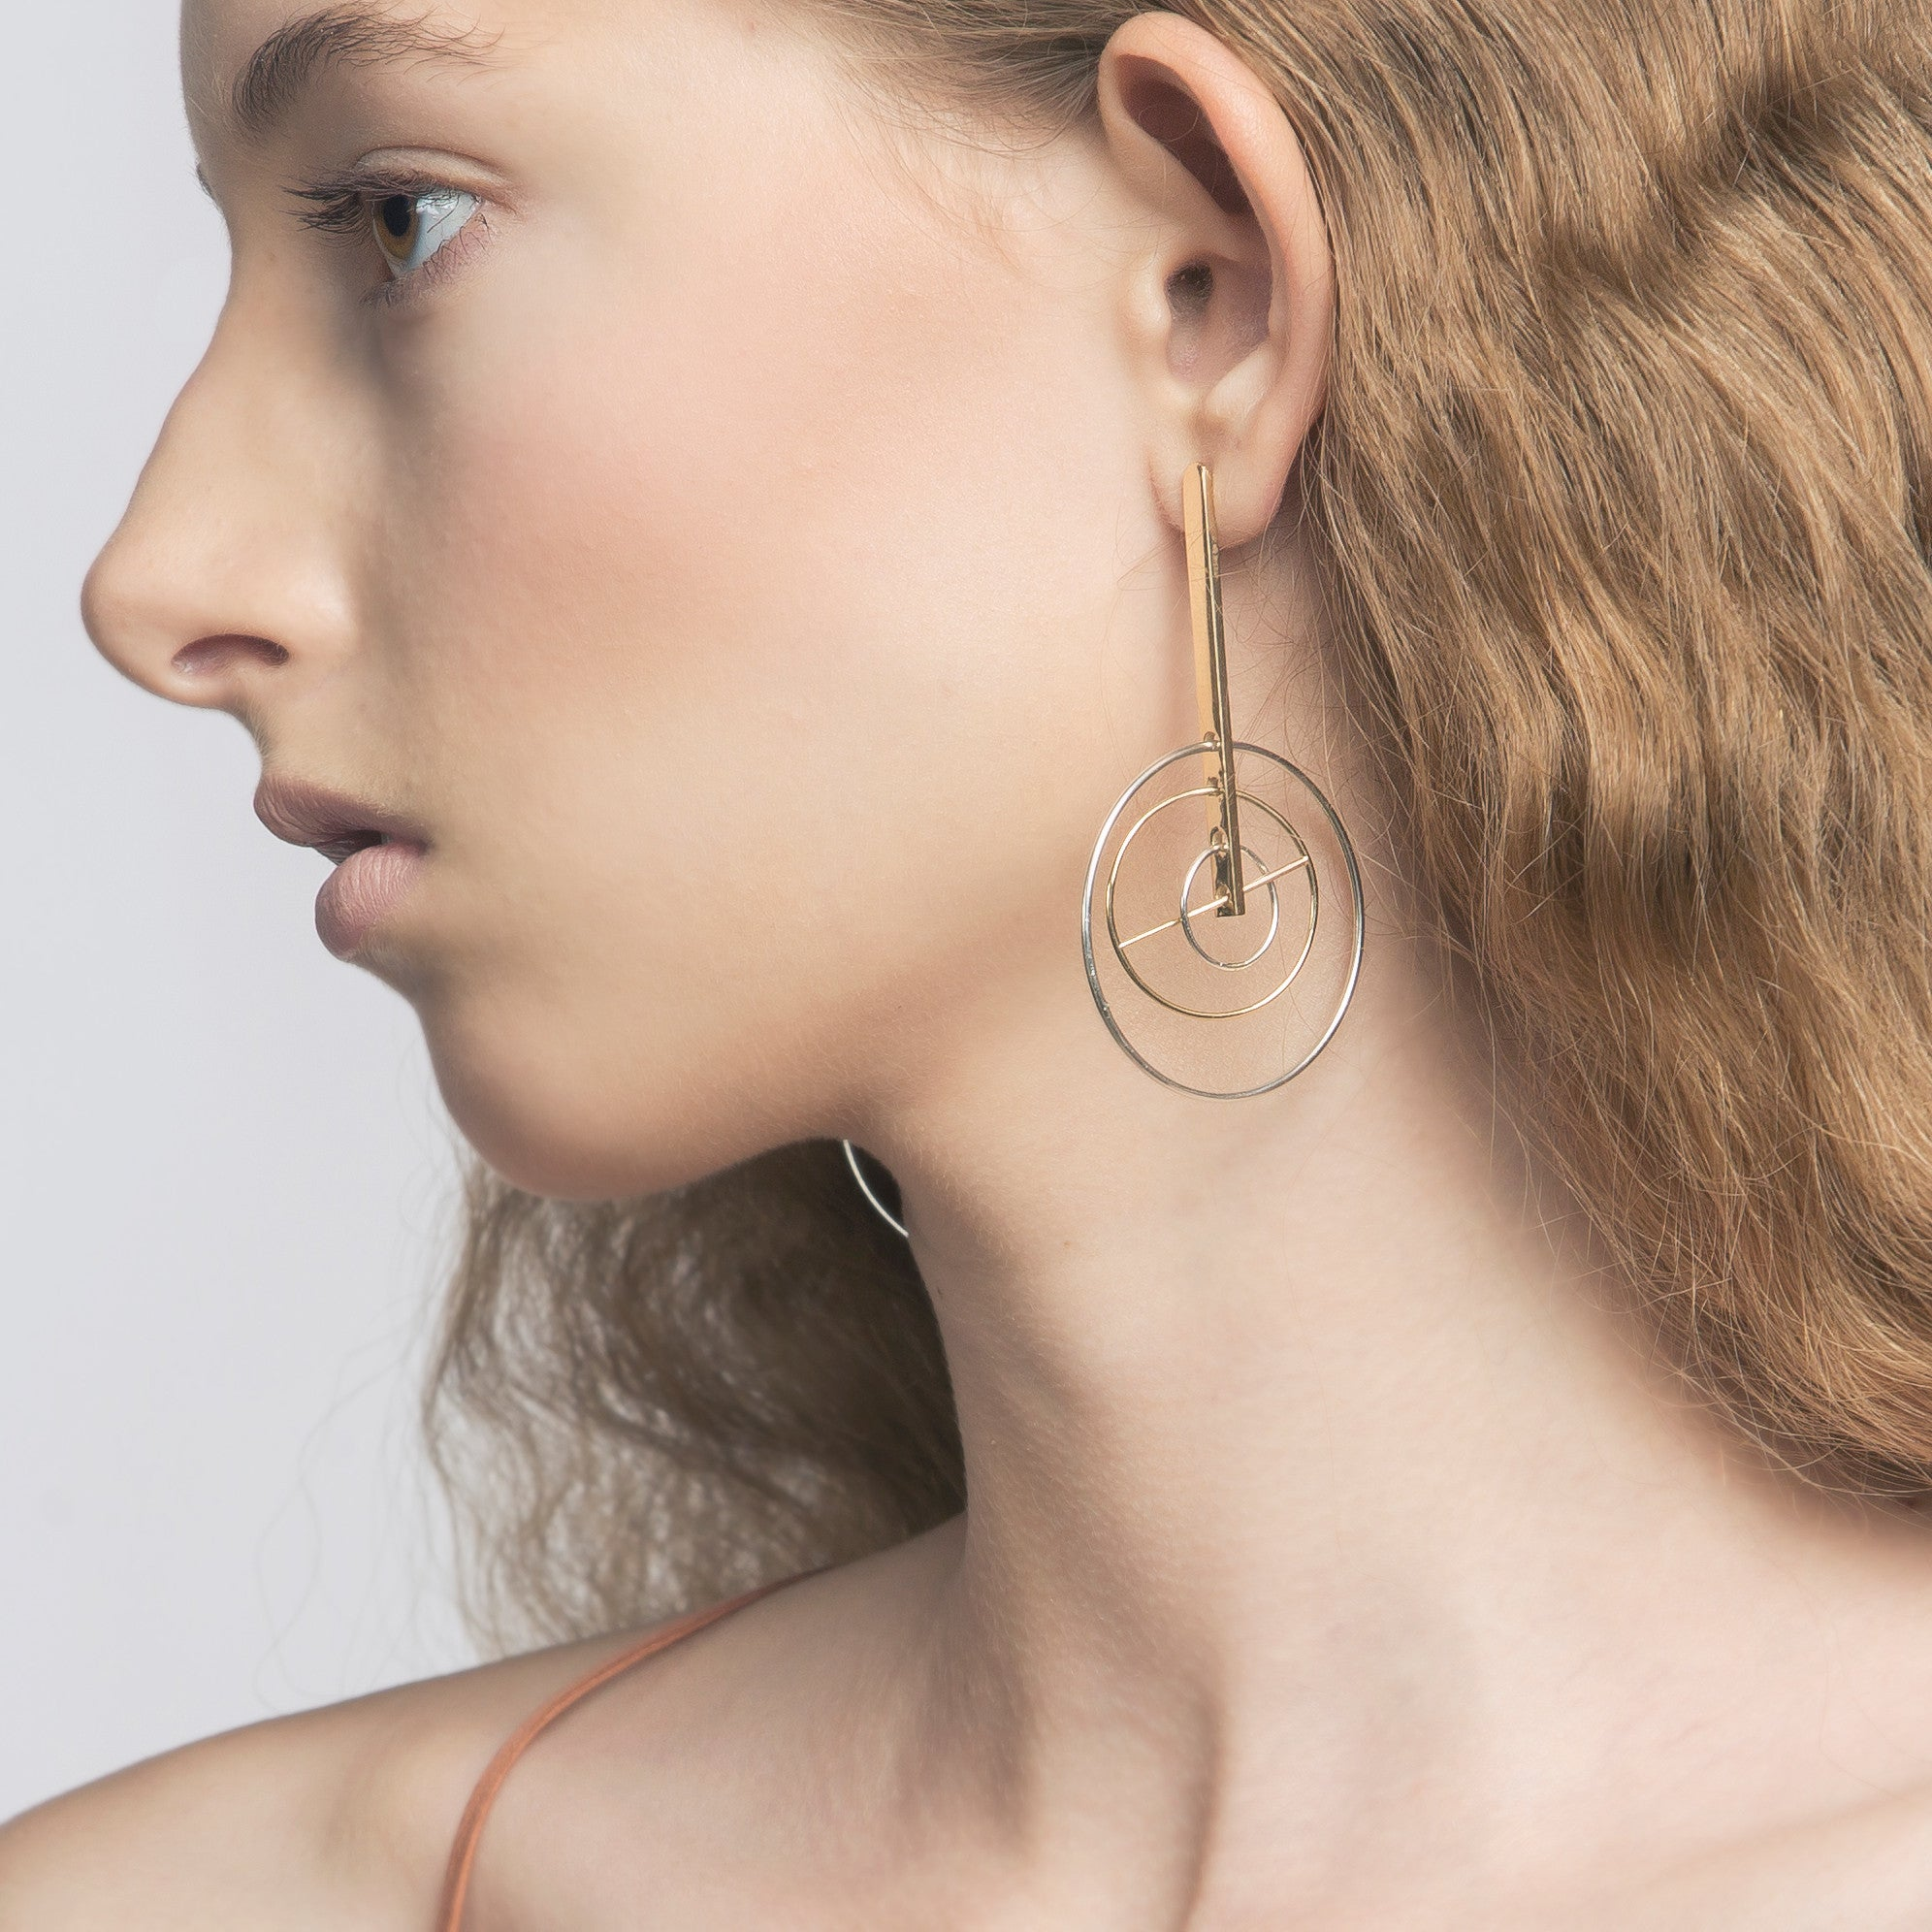 Kinetic Earring detail on model